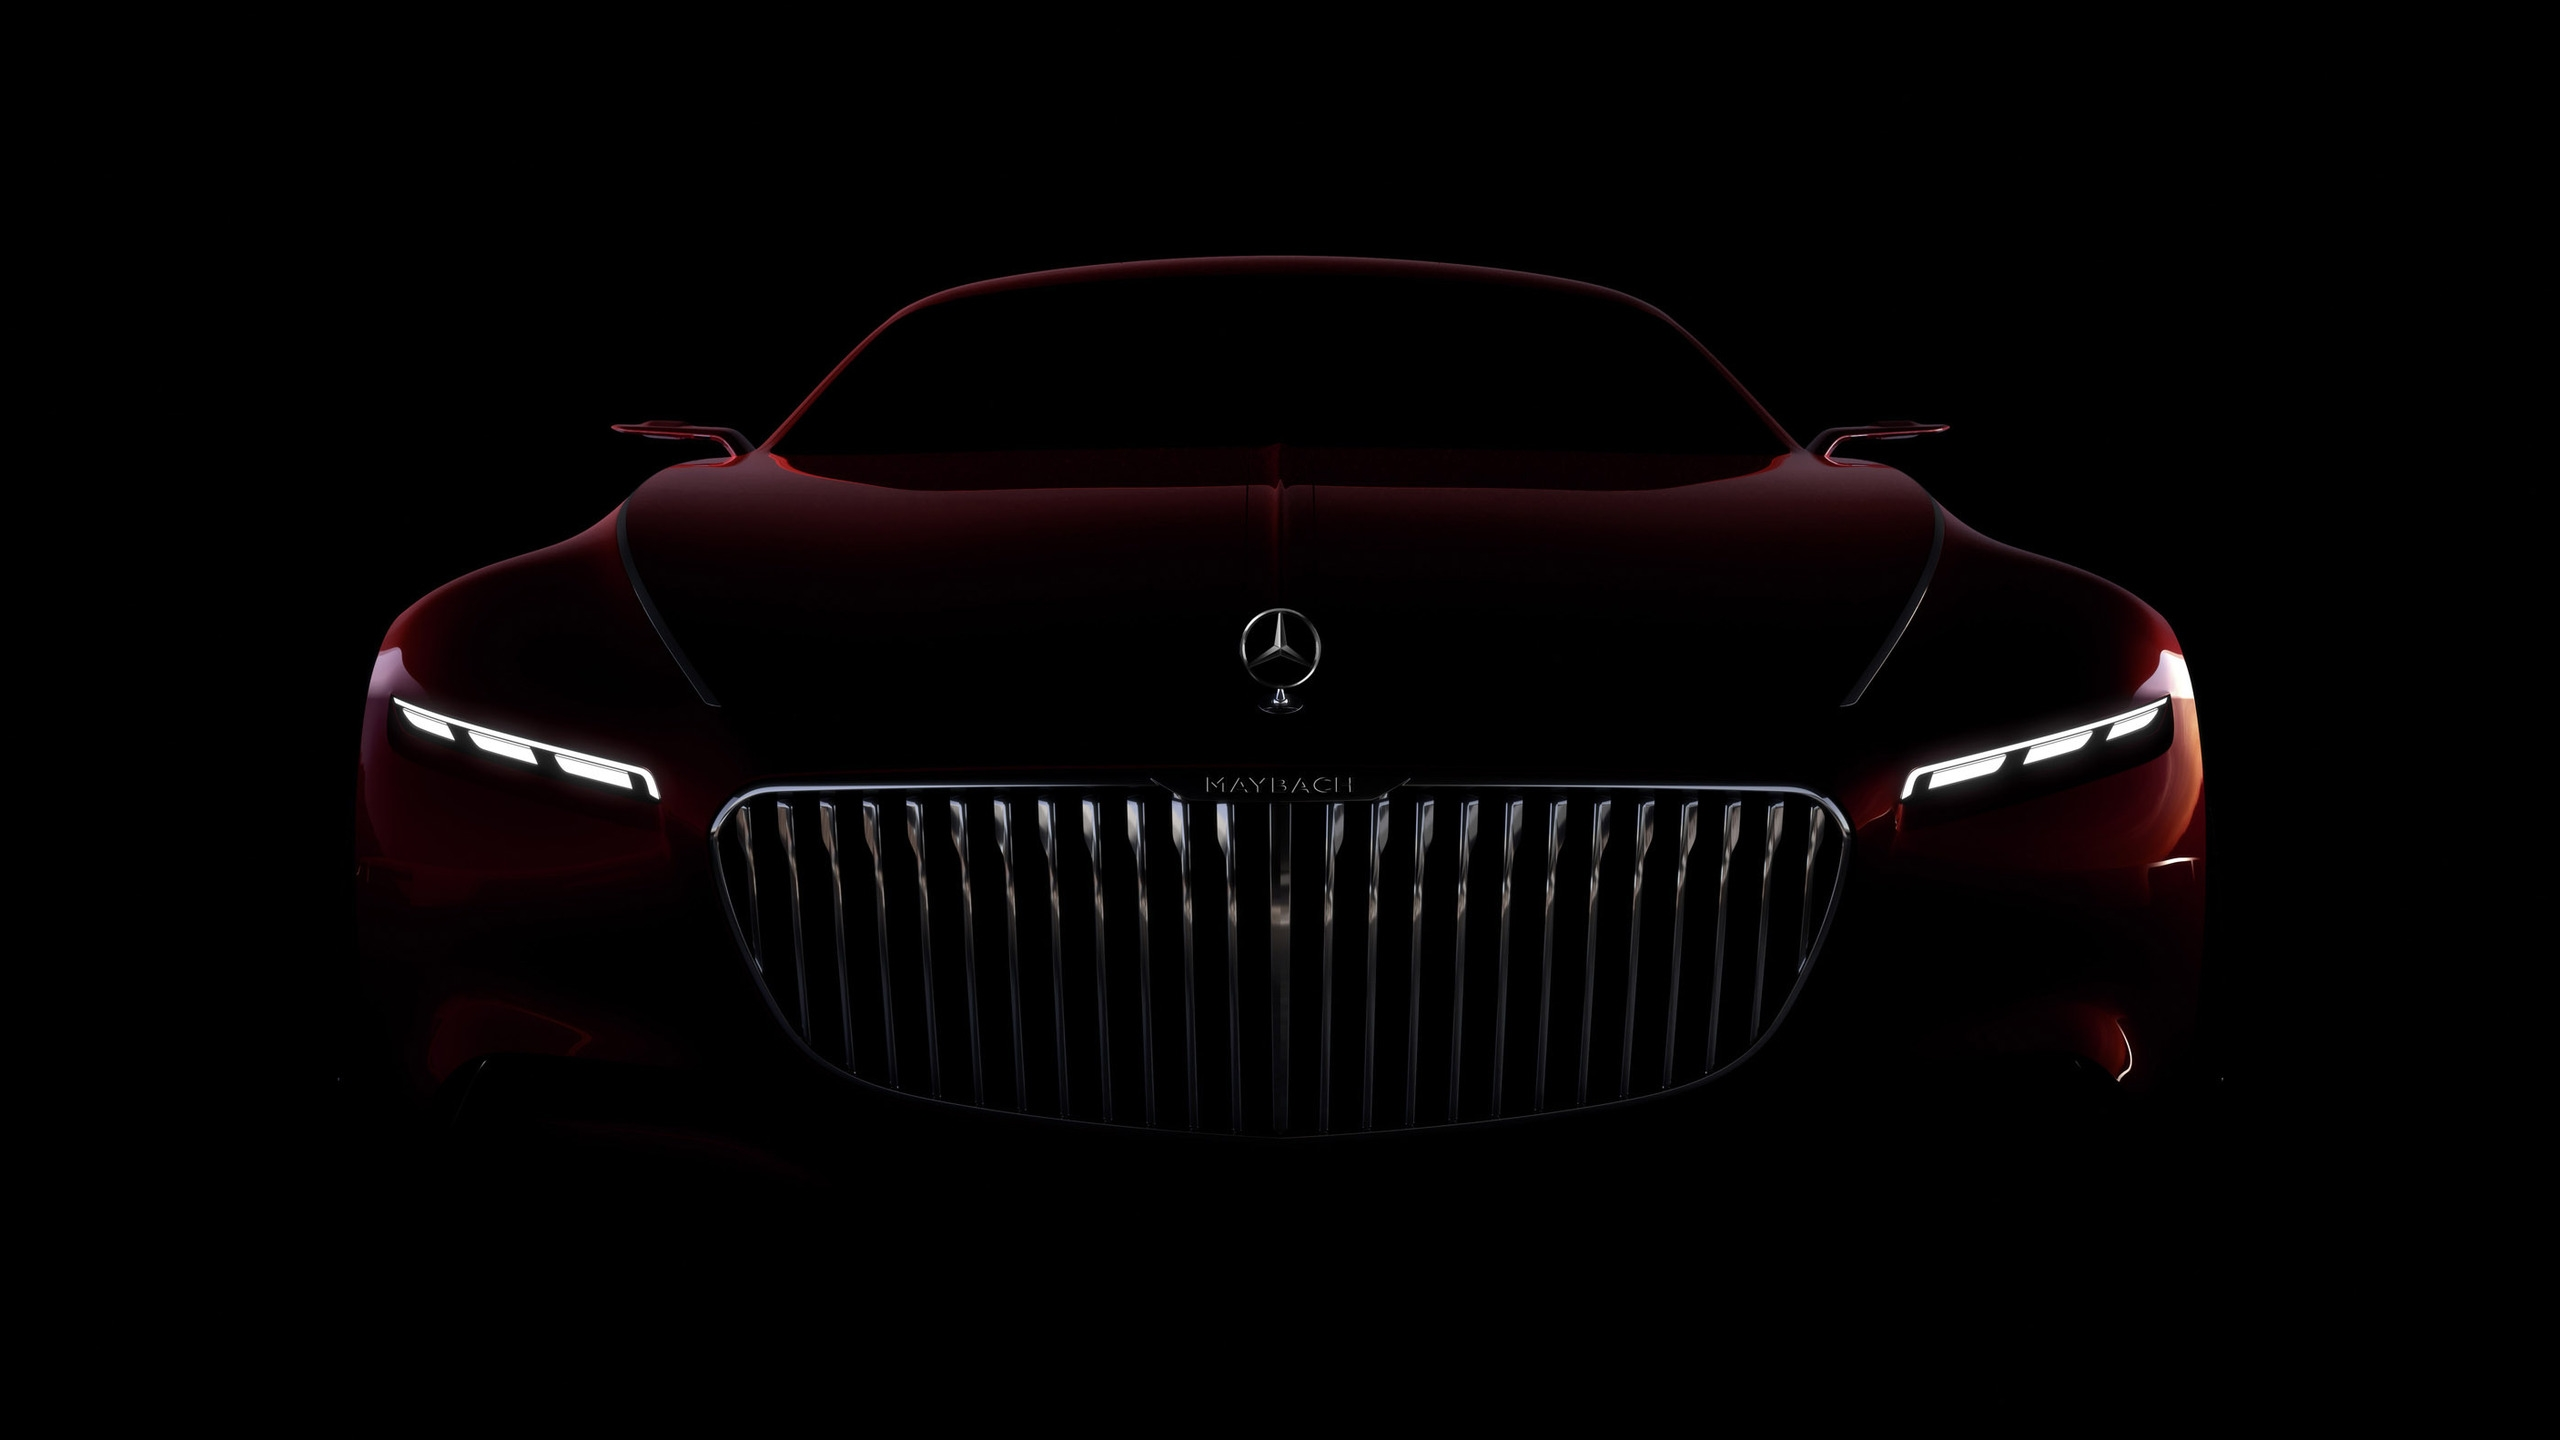 Amazing Vision Mercedes Maybach 6 2016 for 2560x1440 HDTV resolution